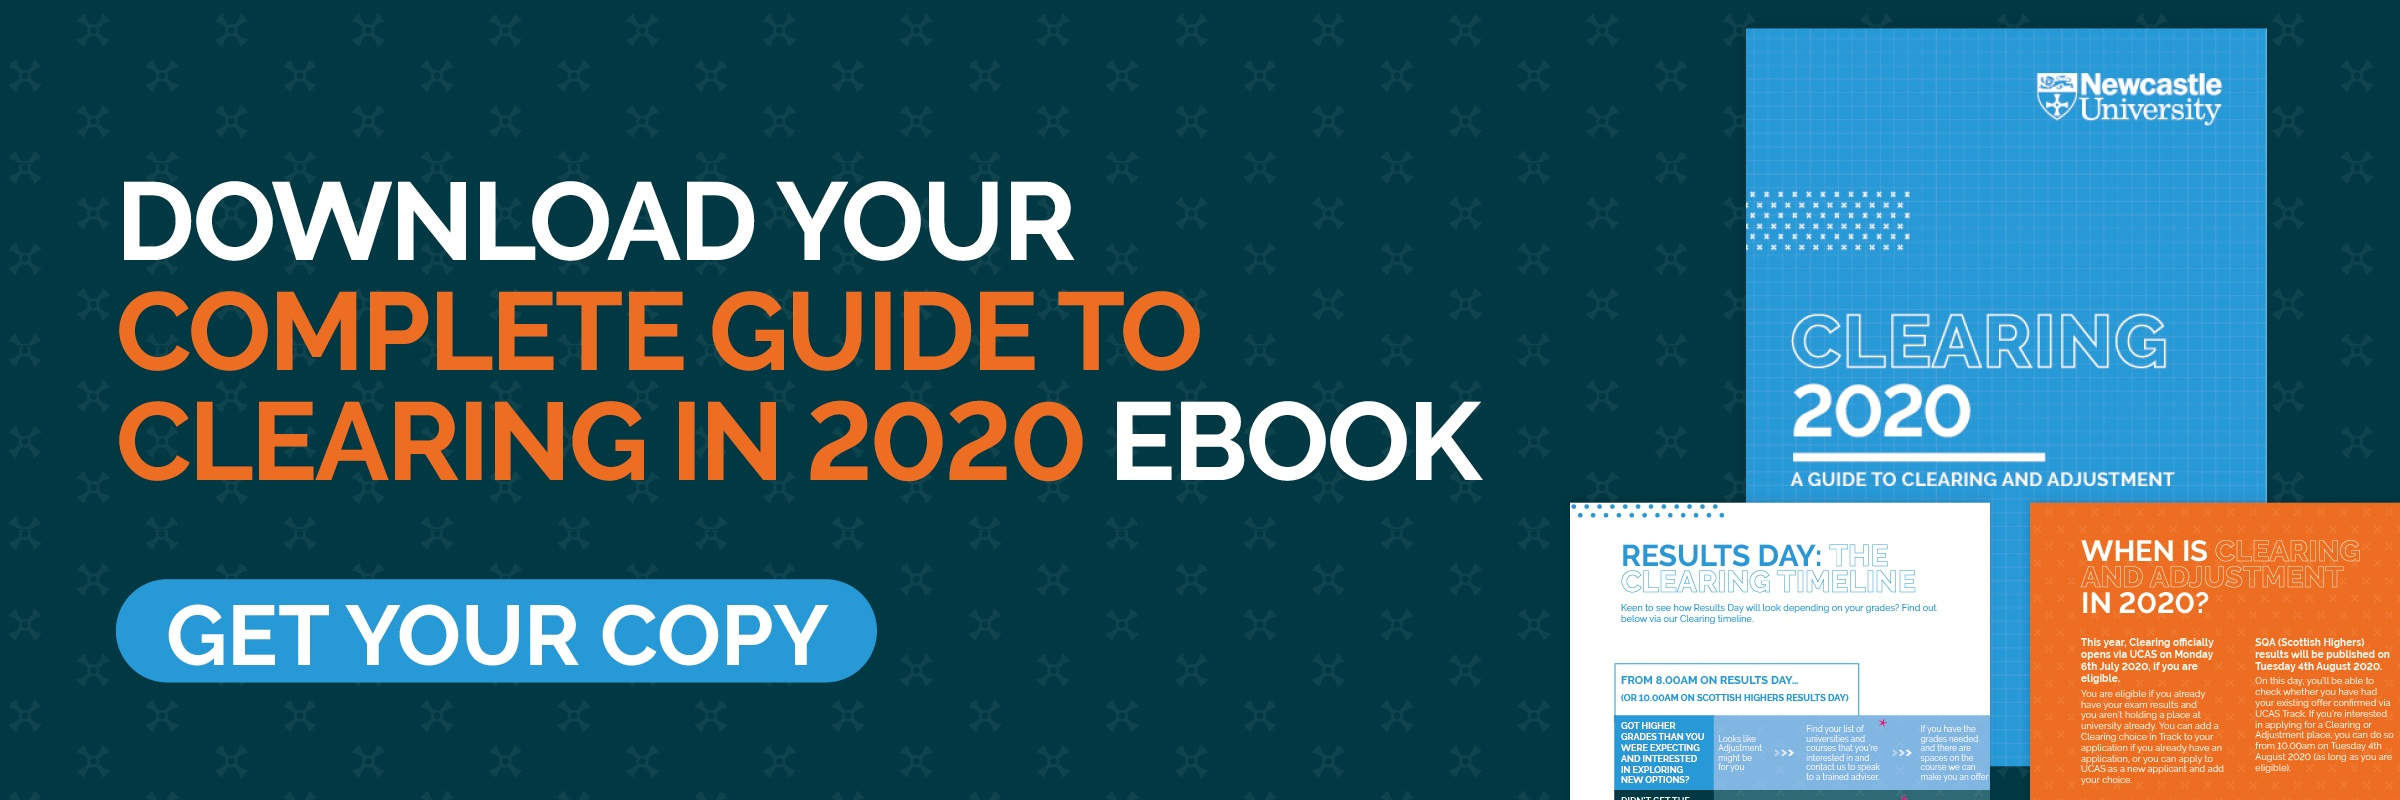 Guide to Clearing 2020 eBook